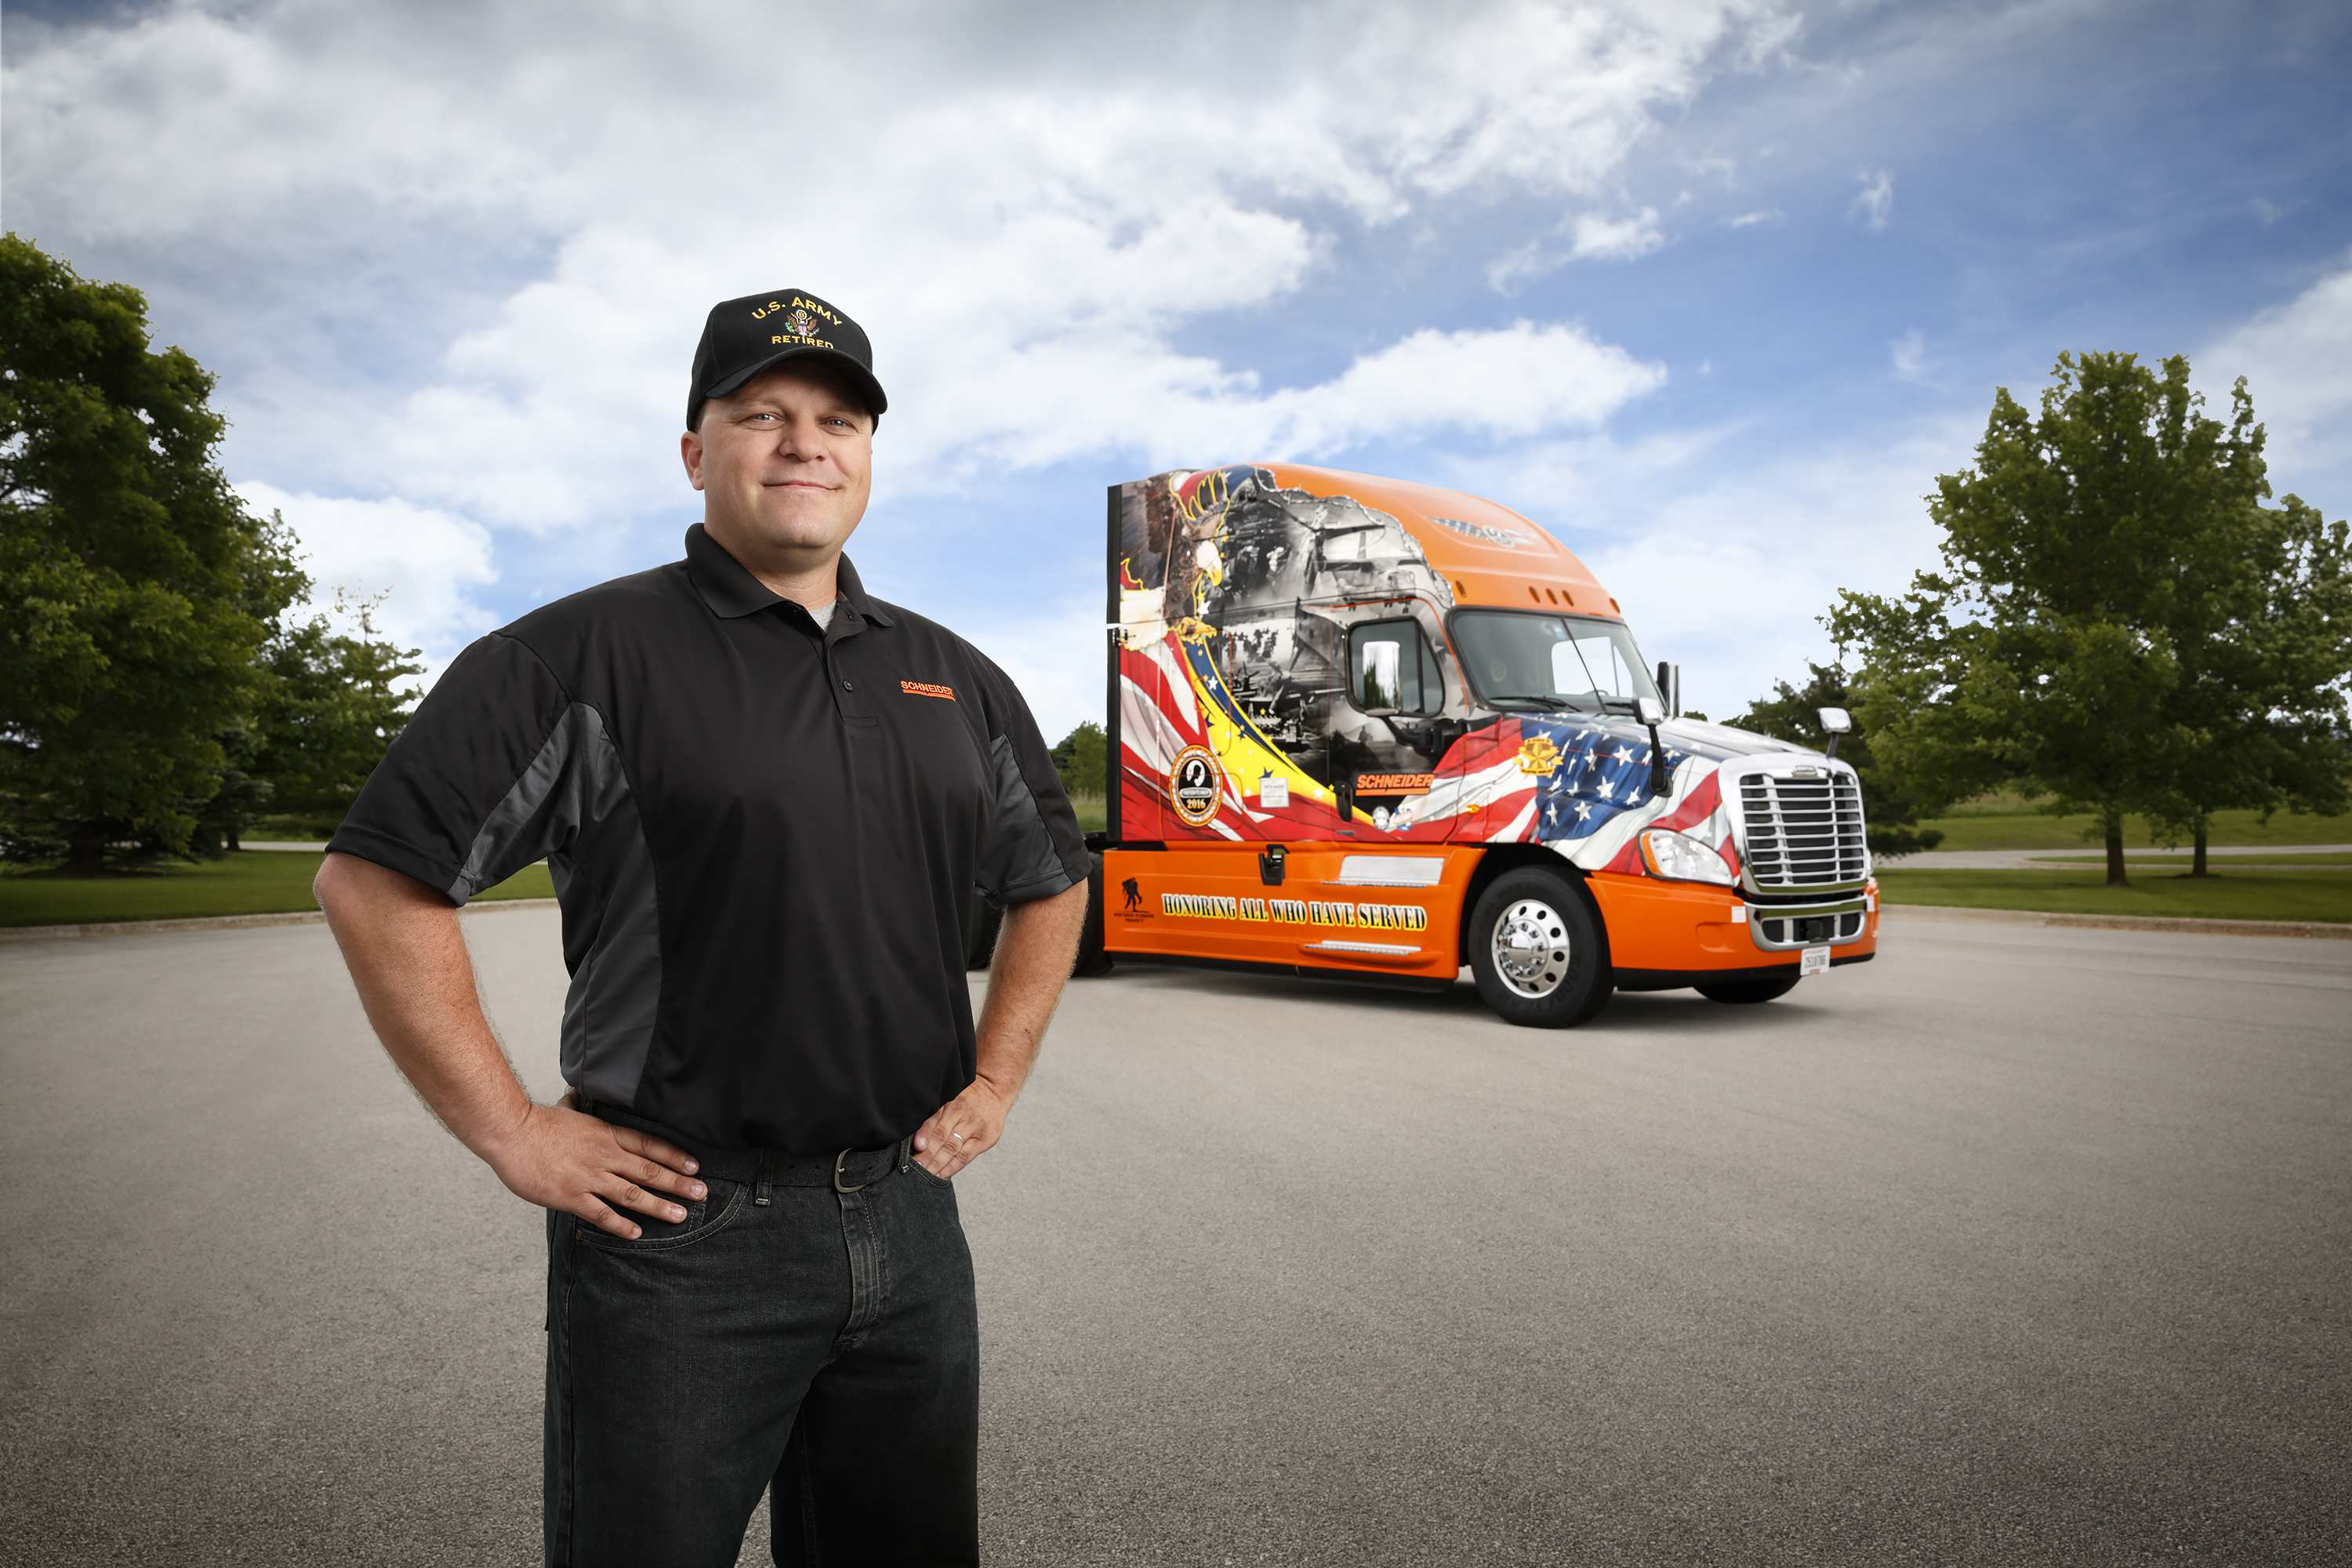 Army vet, Schneider driver chosen to drive Ride of Pride truck